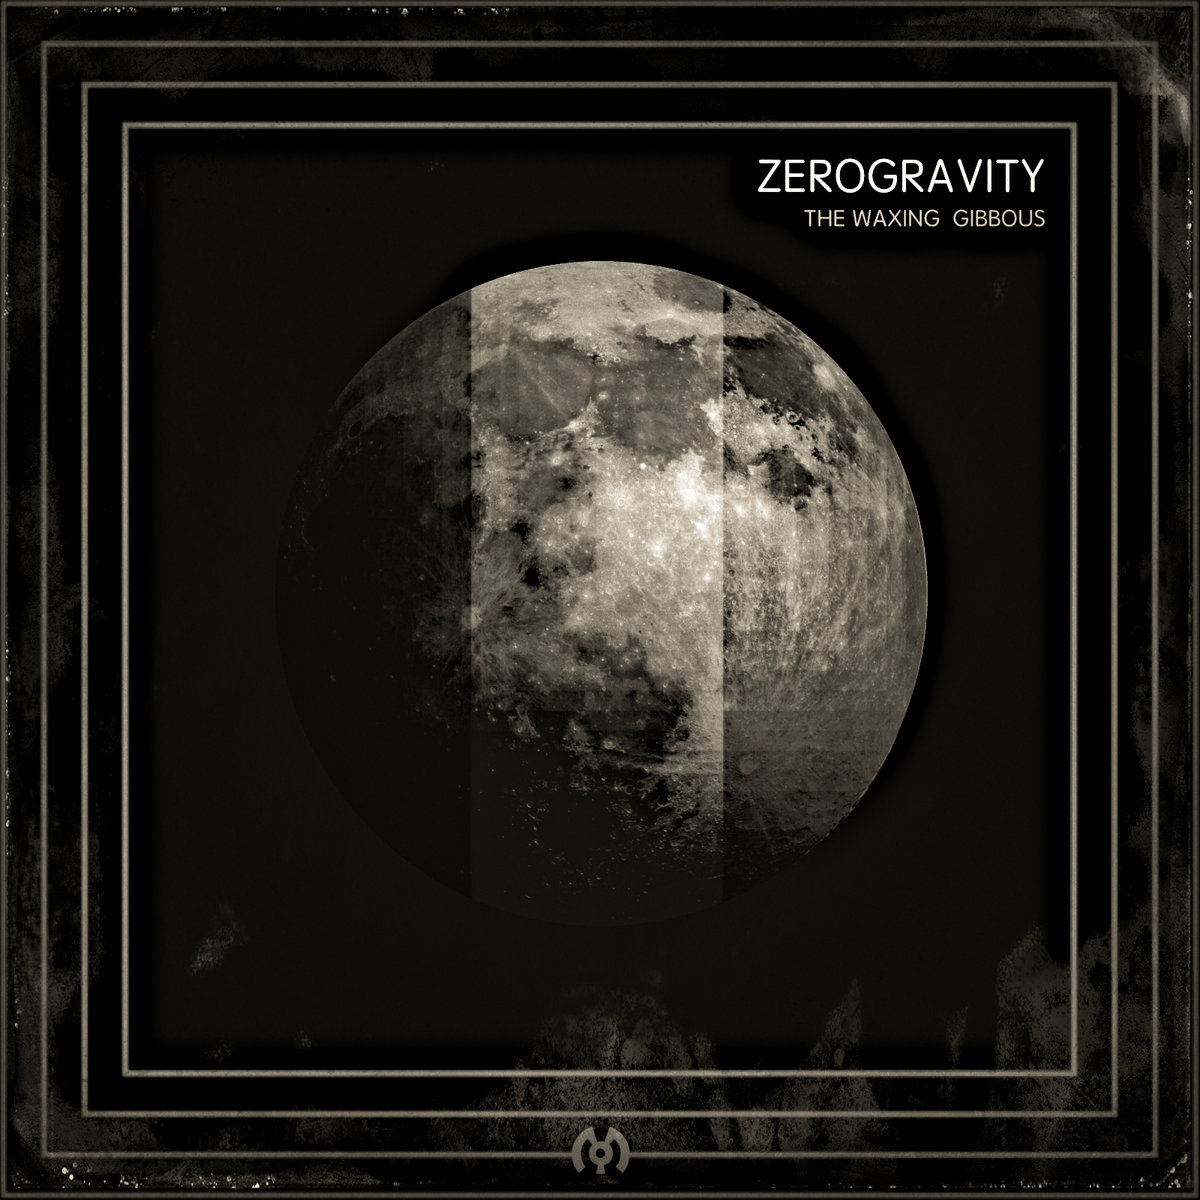 ZEROGRAVITY - Prideful Joy @ 'The Waxing Gibbous' album (electronic, dubstep)